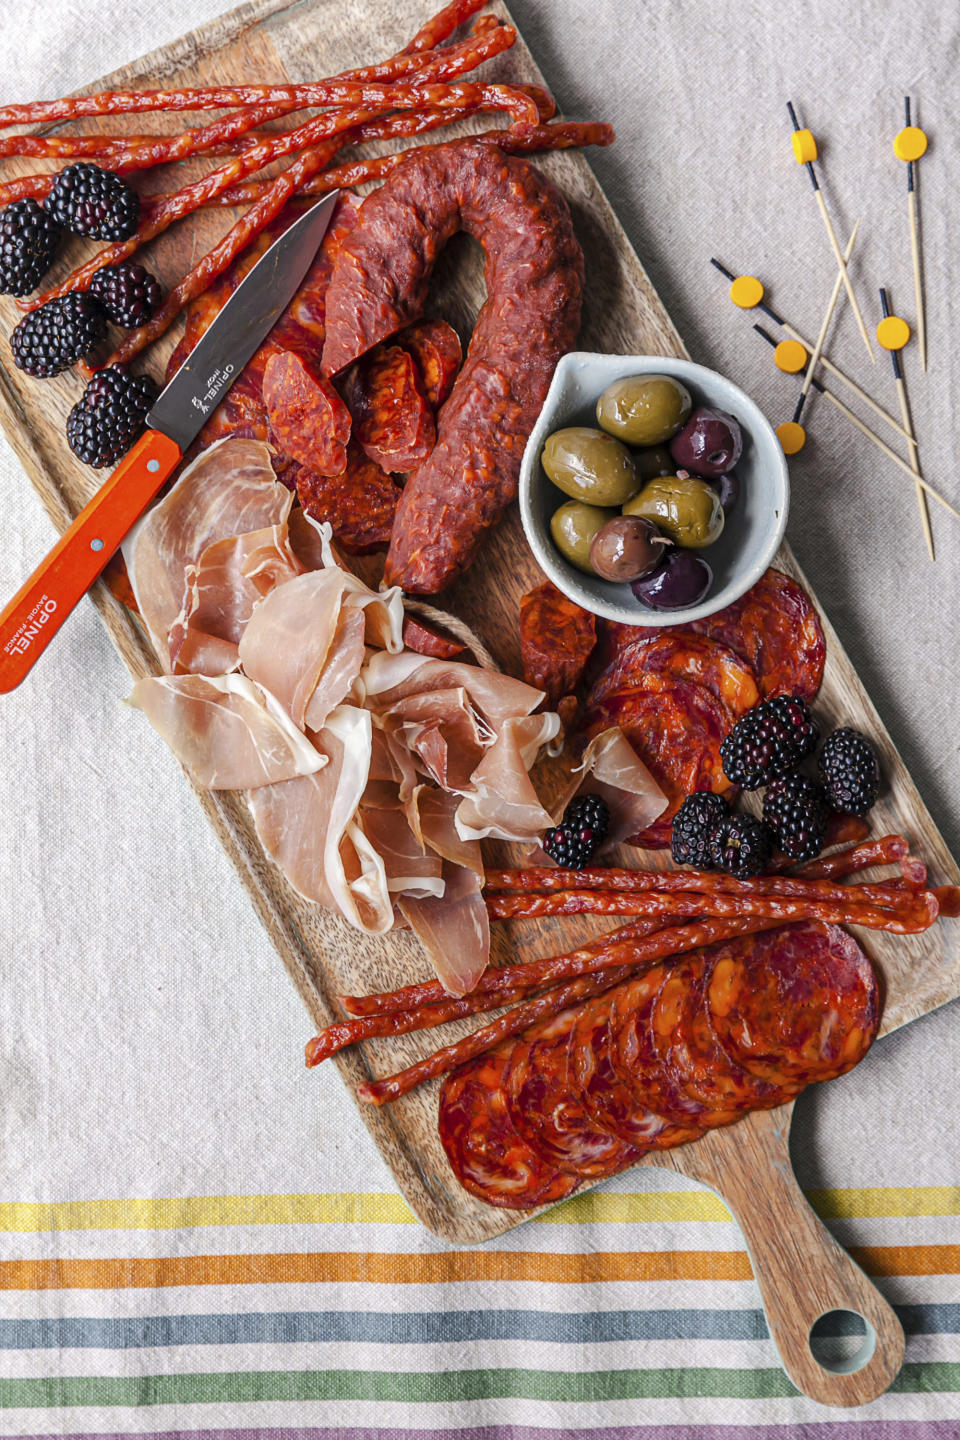 A variety of salumis and olives are displayed on a graze board in New York. Salumi was born out of necessary to preserve meat pre-refrigeration, and to use all parts of the pig with no waste. Now there are many manufacturers commercially producing packaged salumi, available at supermarkets. (Carrie Crow via AP)